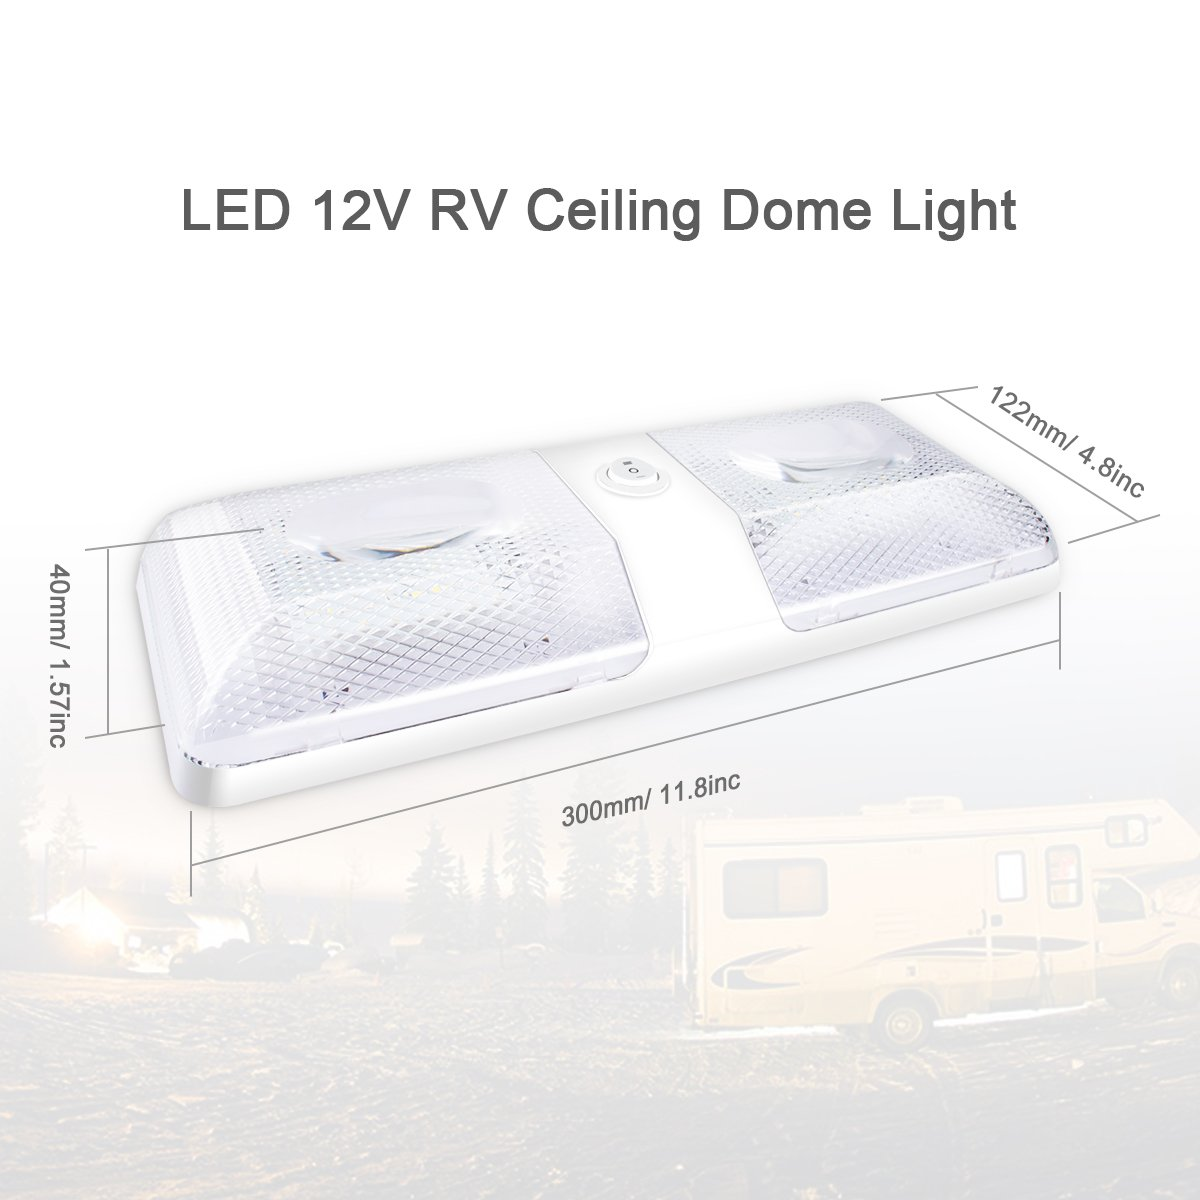 Morpilot 2Pack RV Double Ceiling Dome Light Fixture Replacement Interior Lighting 12V 500LM 48LEDs with Switch for RVs Camper Motorhomes Trailer, Natural White 4000-4500K